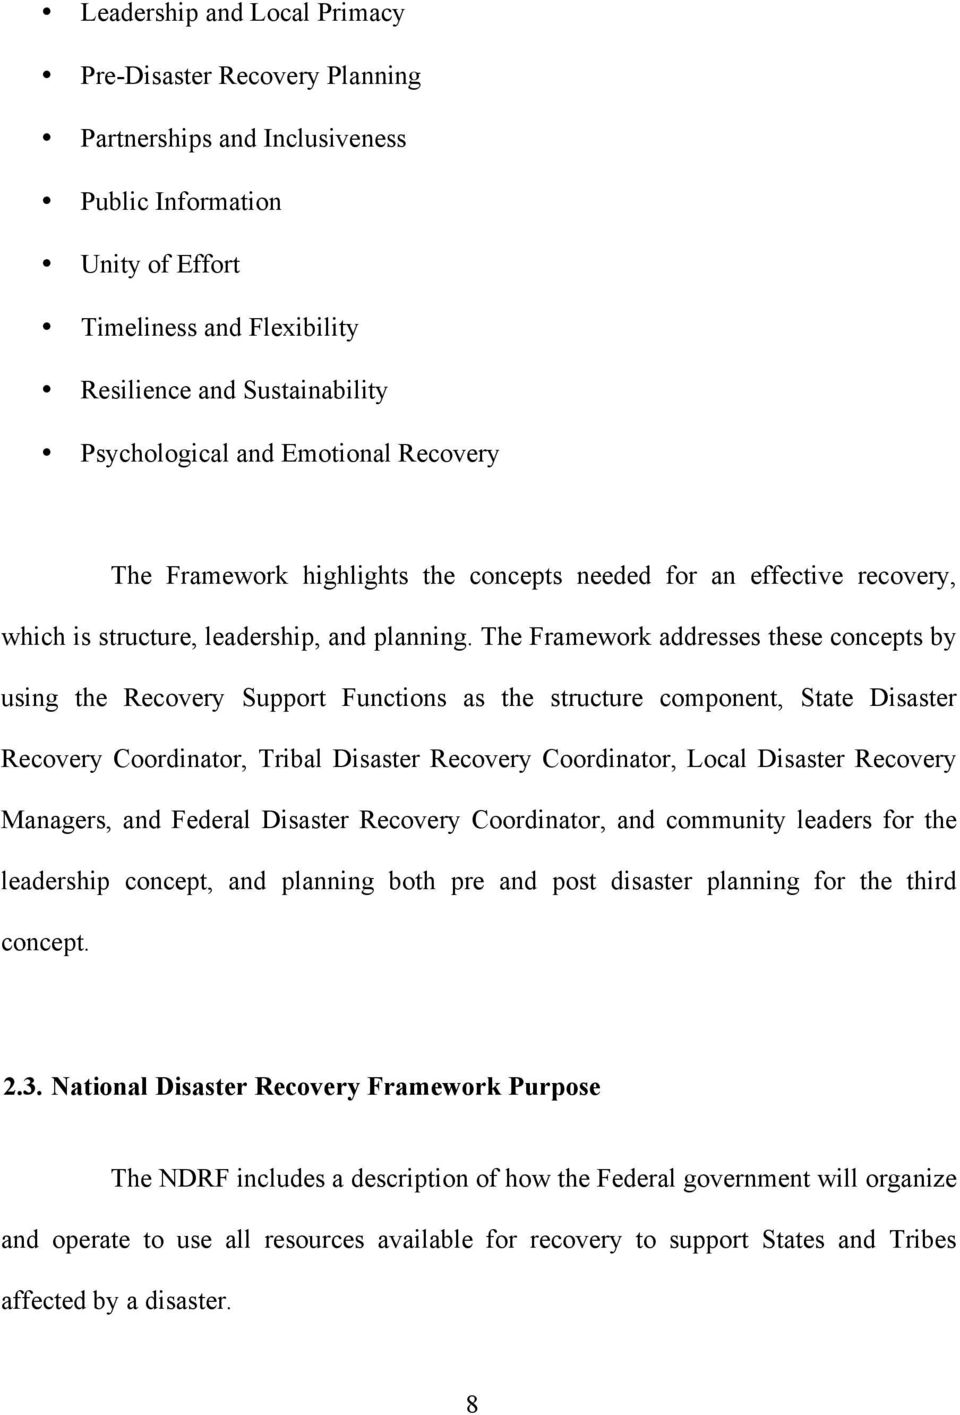 The Framework addresses these concepts by using the Recovery Support Functions as the structure component, State Disaster Recovery Coordinator, Tribal Disaster Recovery Coordinator, Local Disaster